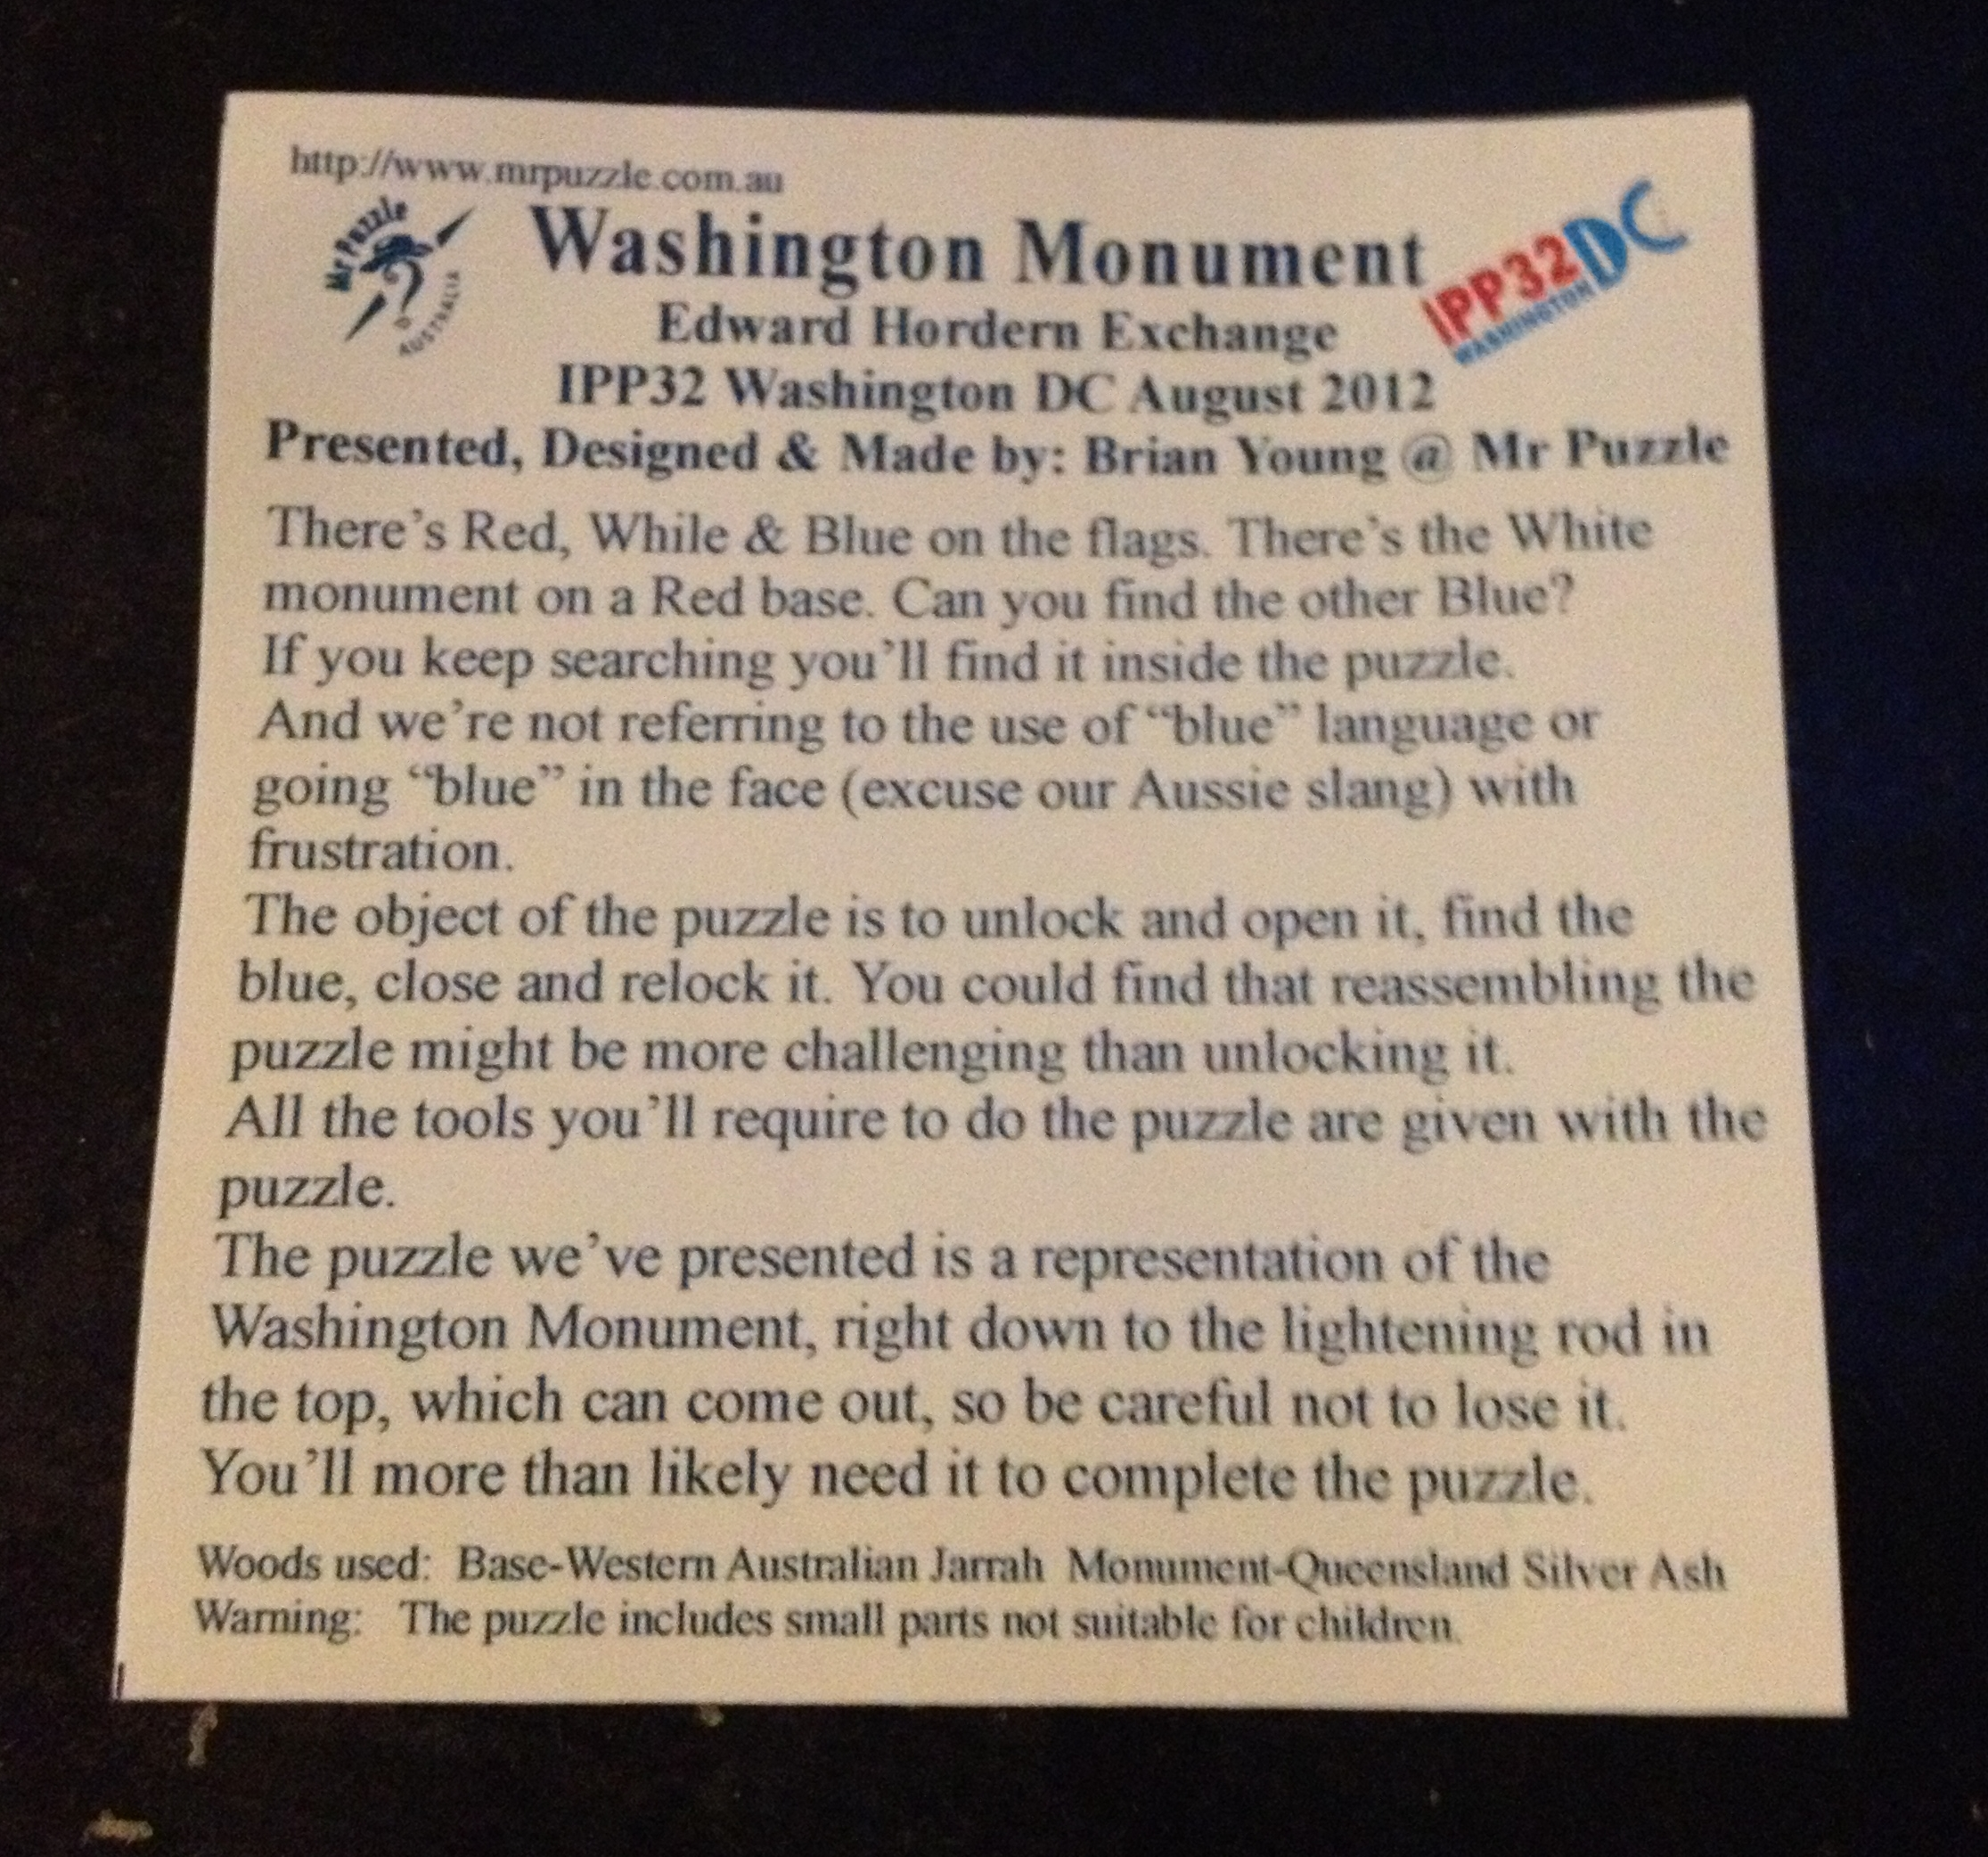 Washington Monument description card